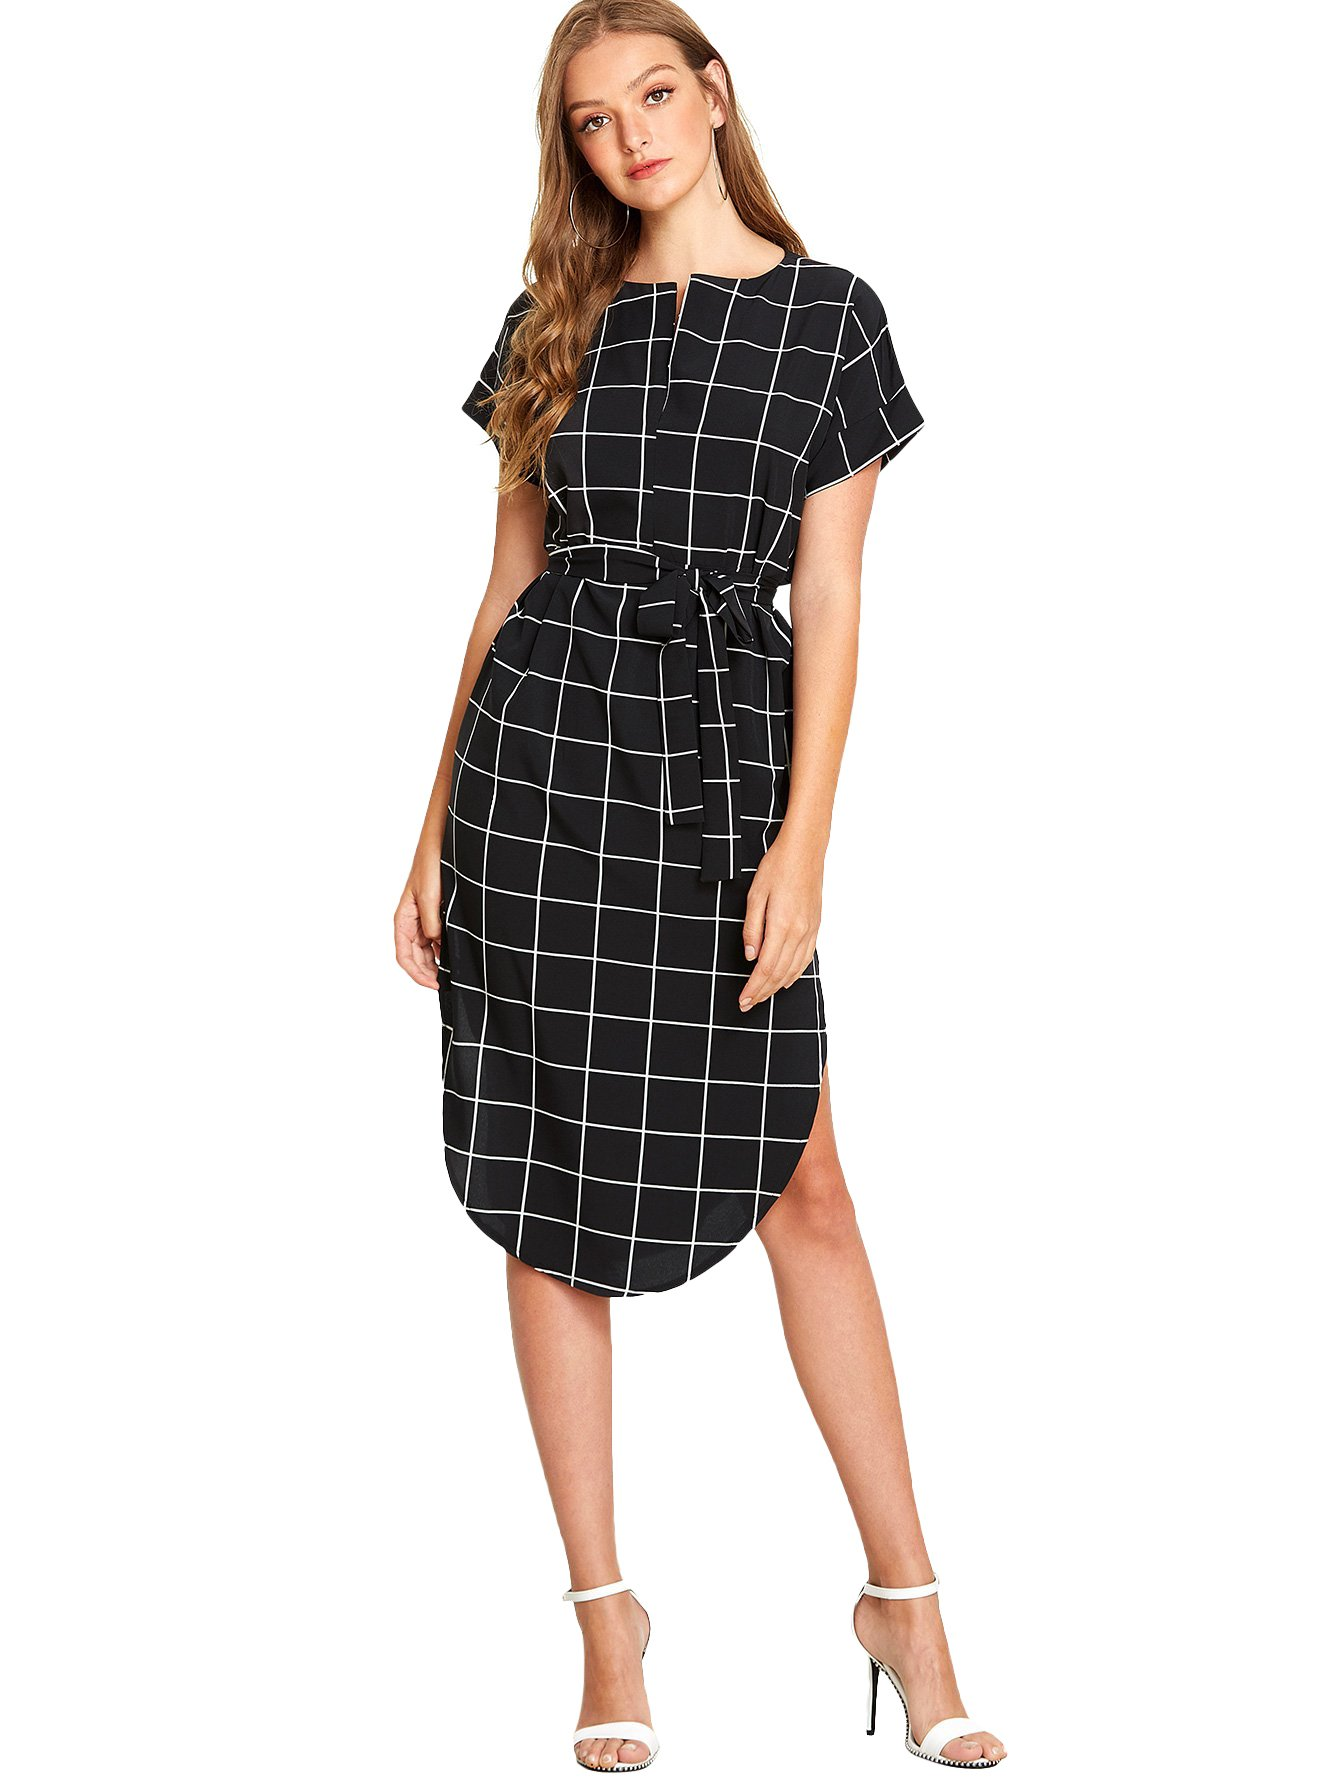 Romwe Women's Dresses Summer Casual Grid Dress Knee Length Split Pencil Dress with Belt Black XL